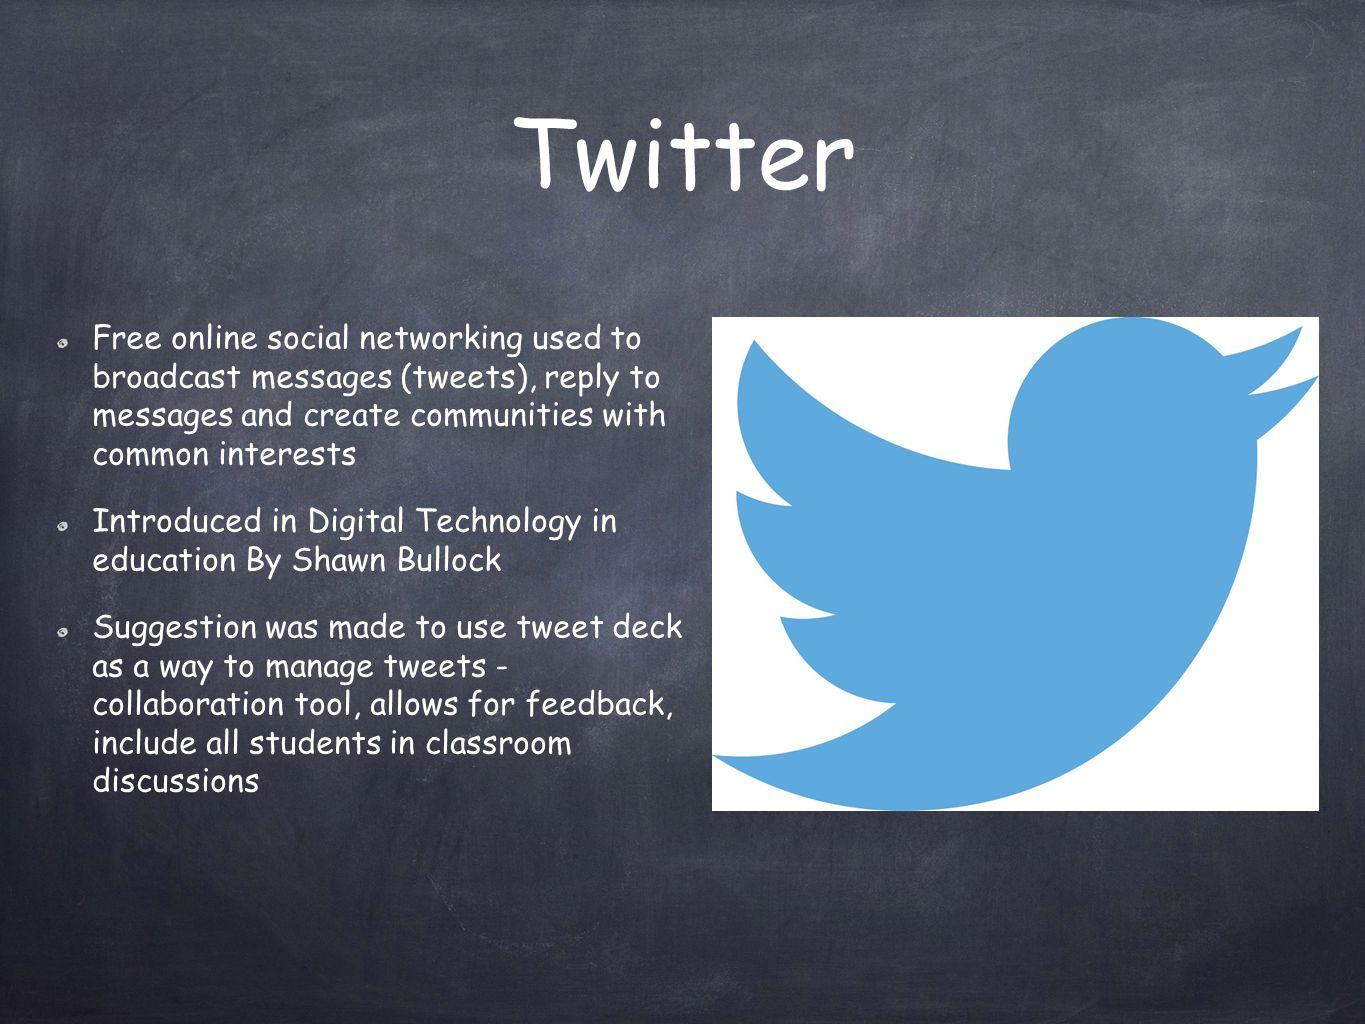 Twitter Free online social networking used to broadcast messages (tweets), reply to messages and create communities with common interests Introduced in Digital Technology in education By Shawn Bullock Suggestion was made to use tweet deck as a way to manage tweets - collaboration tool, allows for feedback, include all students in classroom discussions